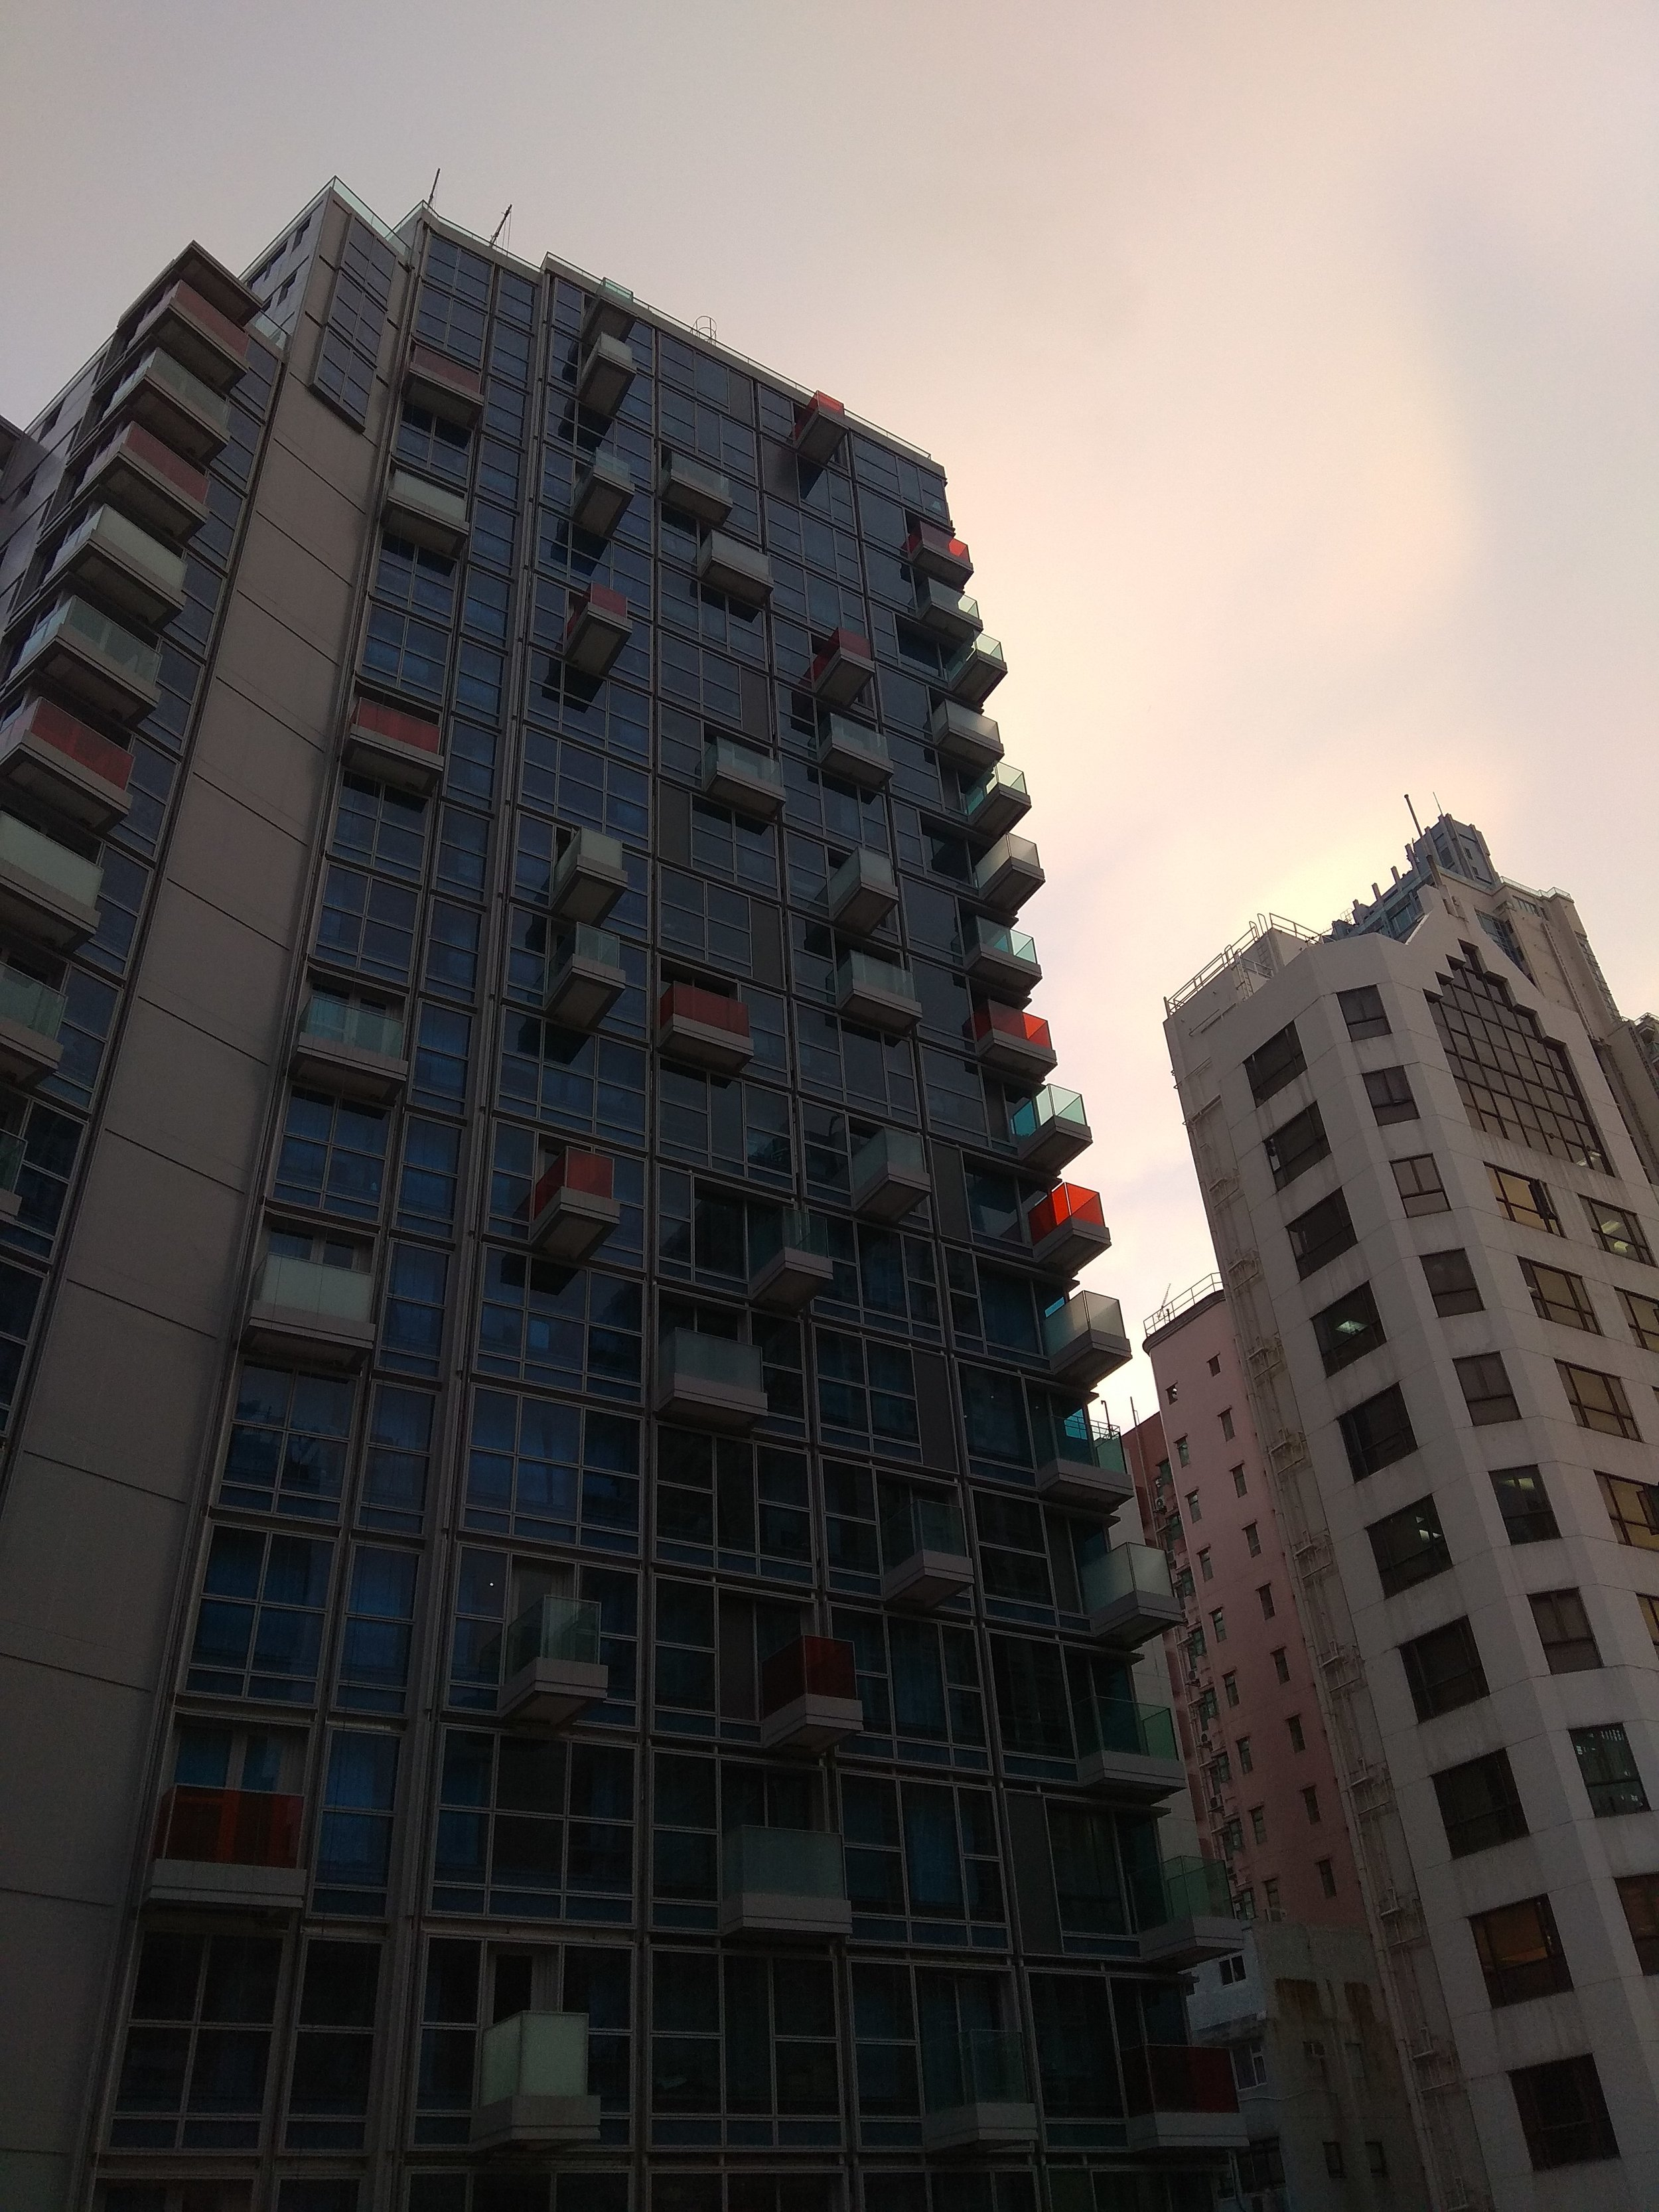 [Image description: photograph of a Hong Kong high-rise building with a dark glass façade and balconies of different colours at seemingly random intervals. There is a smaller, pale high-rise building to the right of the larger one. Late evening sun washes the sky above.]  Photo credit to the author